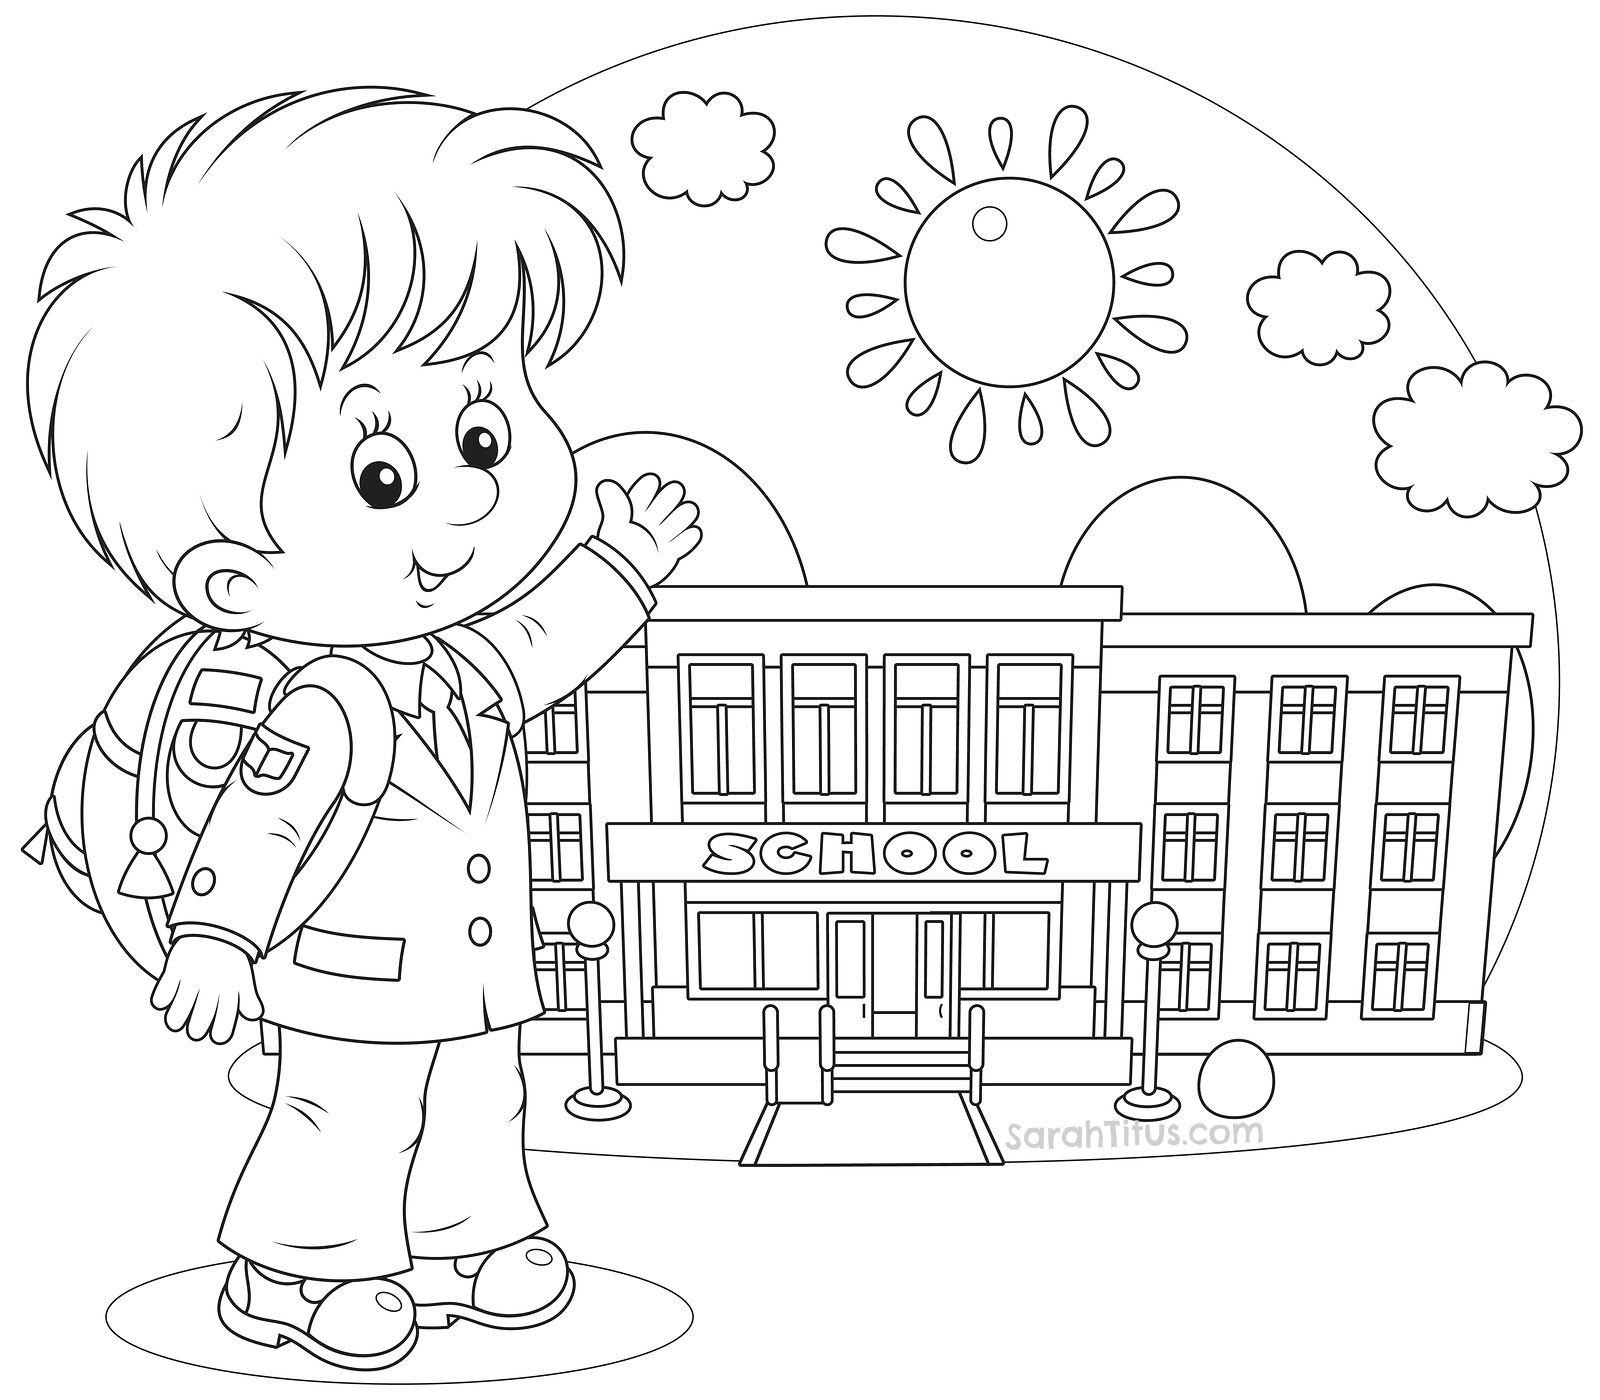 Back to School Coloring Pages | Schulanfang, Schule und Ausmalbilder